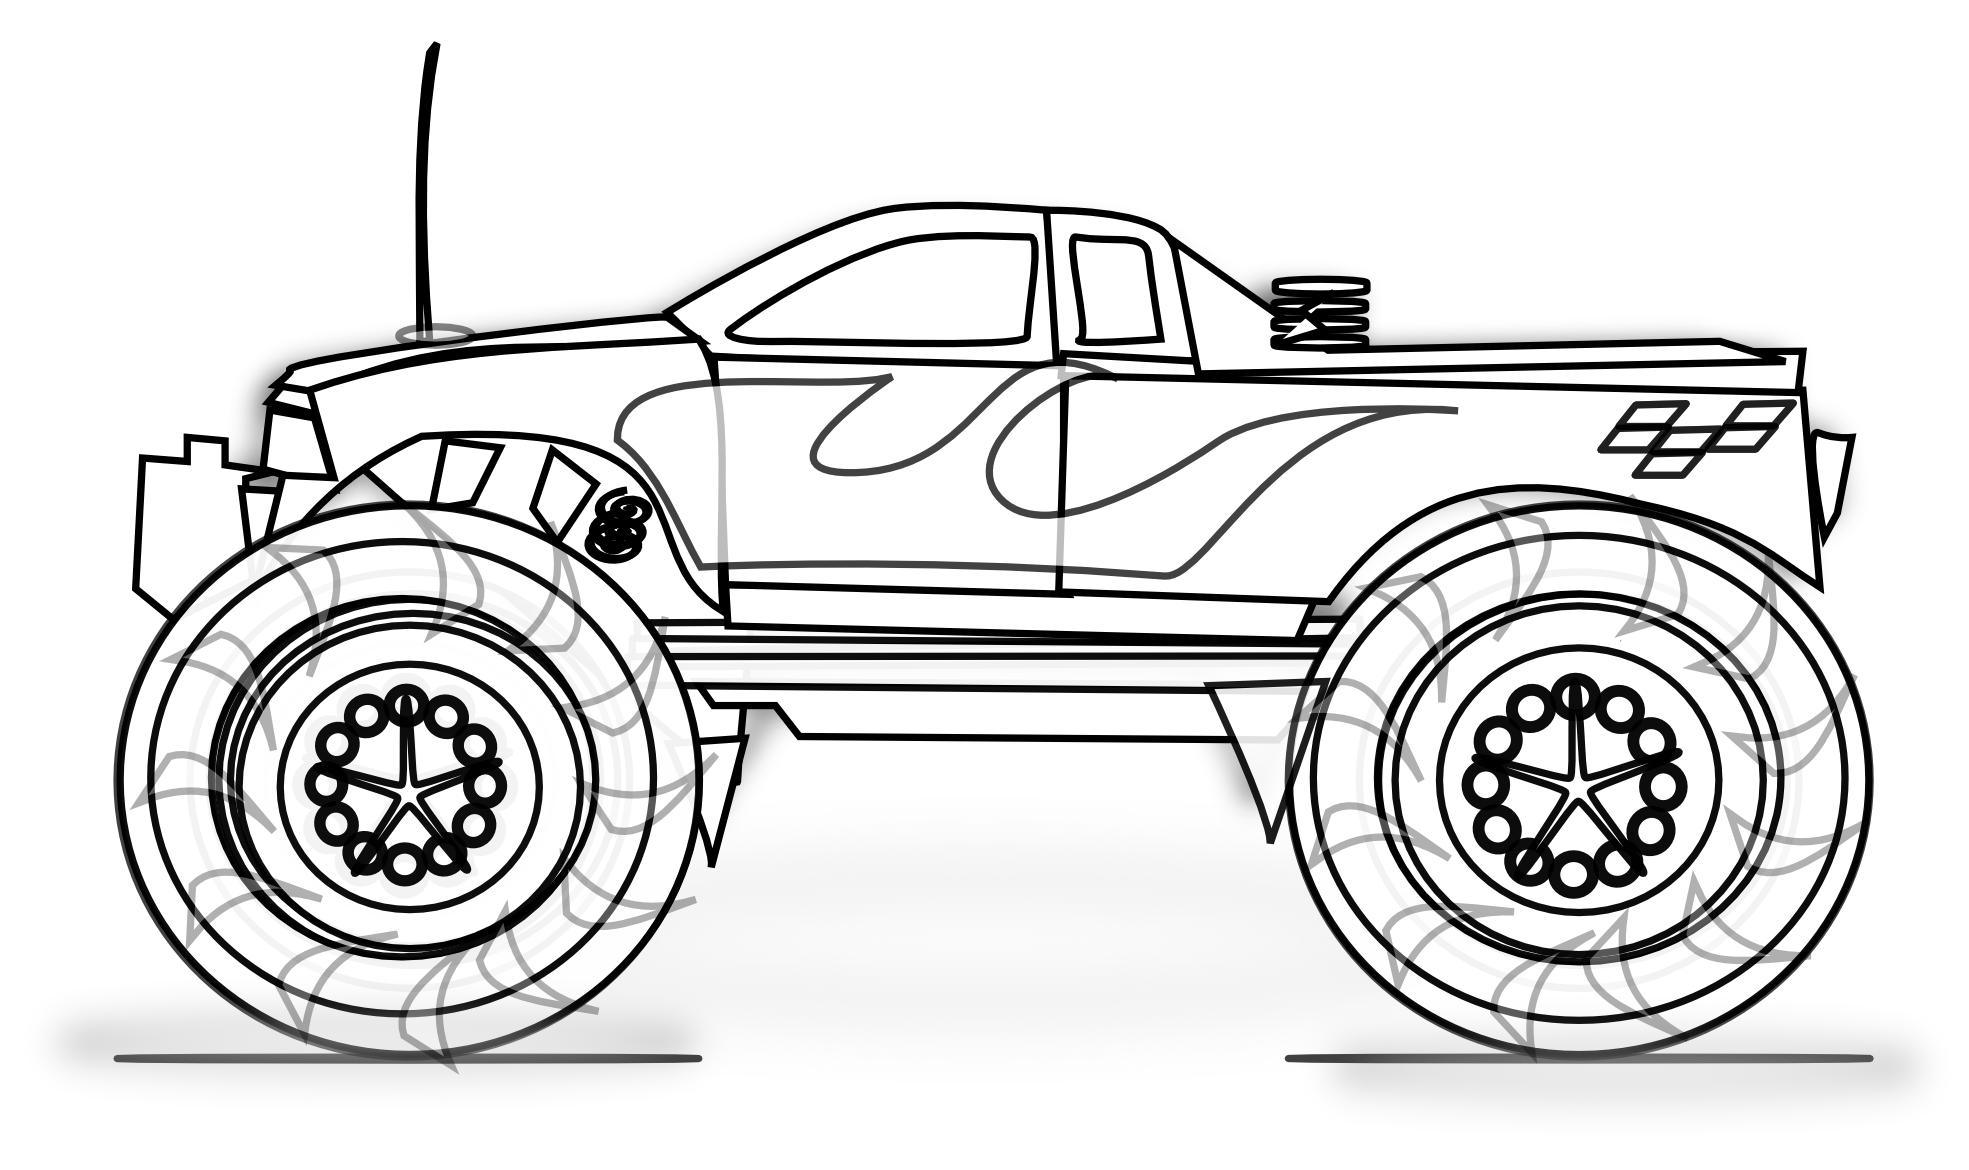 monster truck coloring pages easy free easy to print monster truck coloring pages tulamama truck pages monster easy coloring